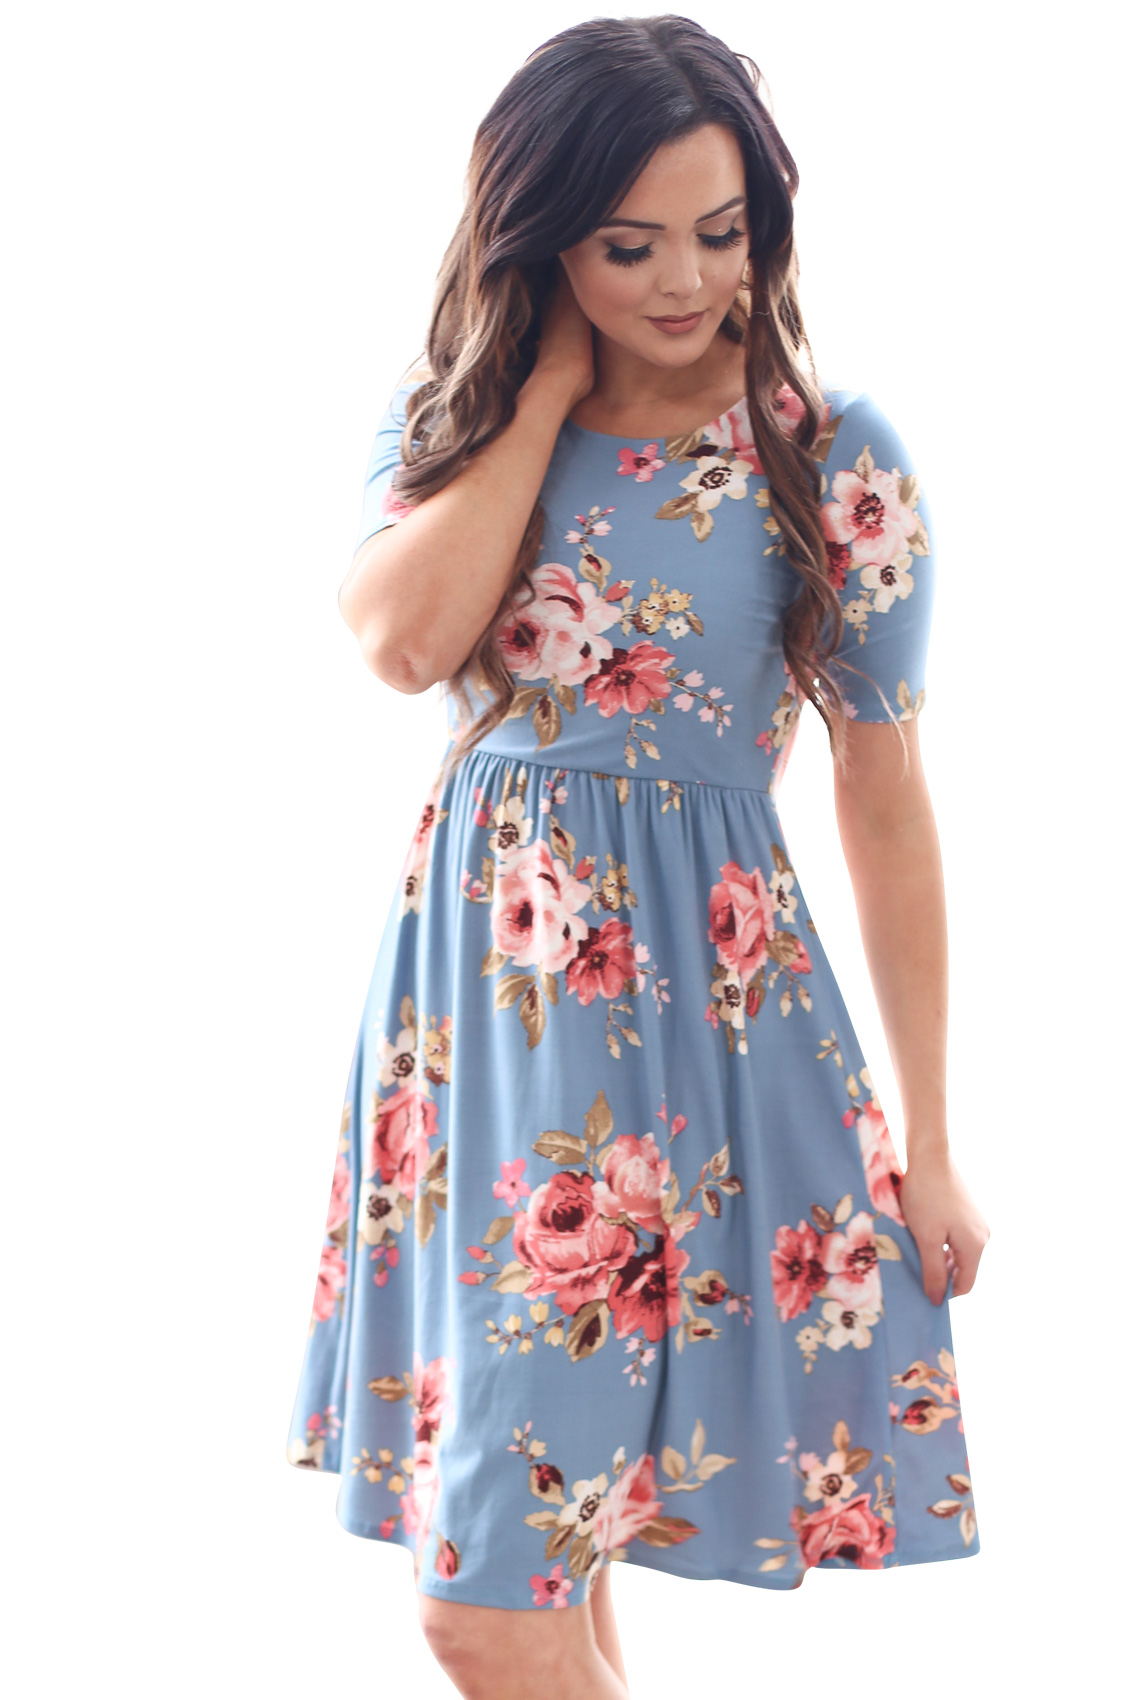 bc55a37f2021 Natalie Modest Dress in Bright Blue w/Multicolored Floral Print